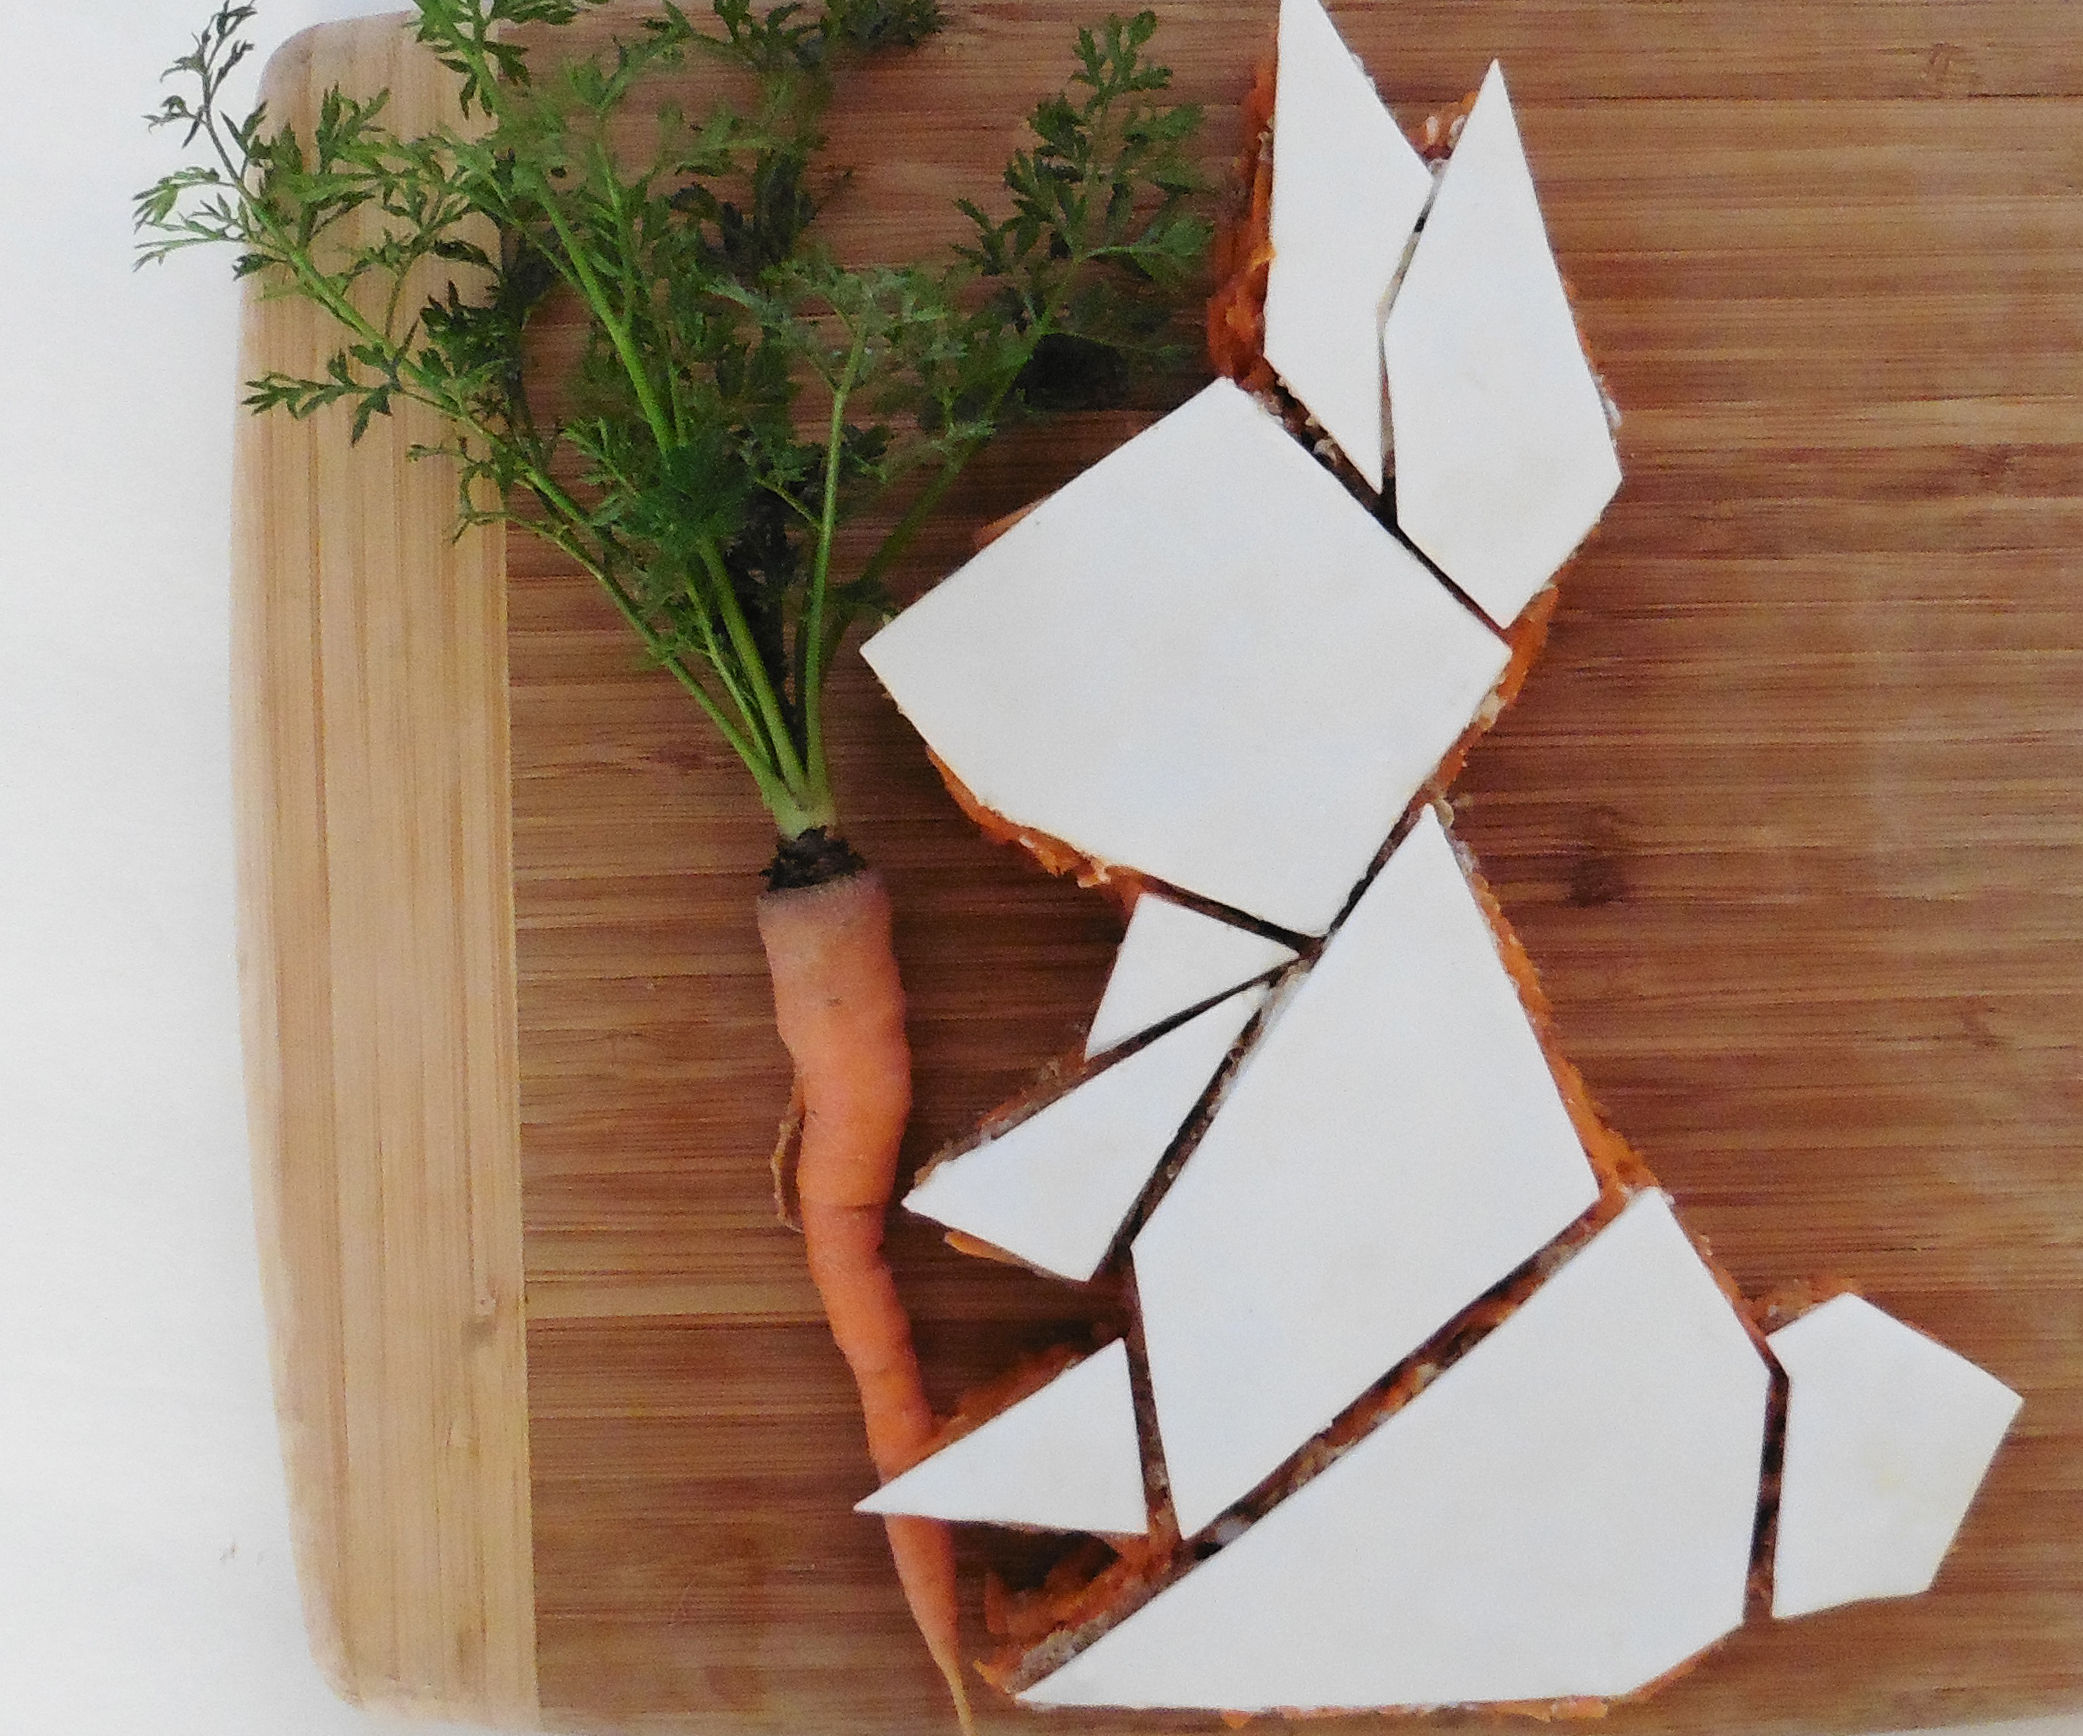 Geometric Bunny Rabbit Carrot Cake